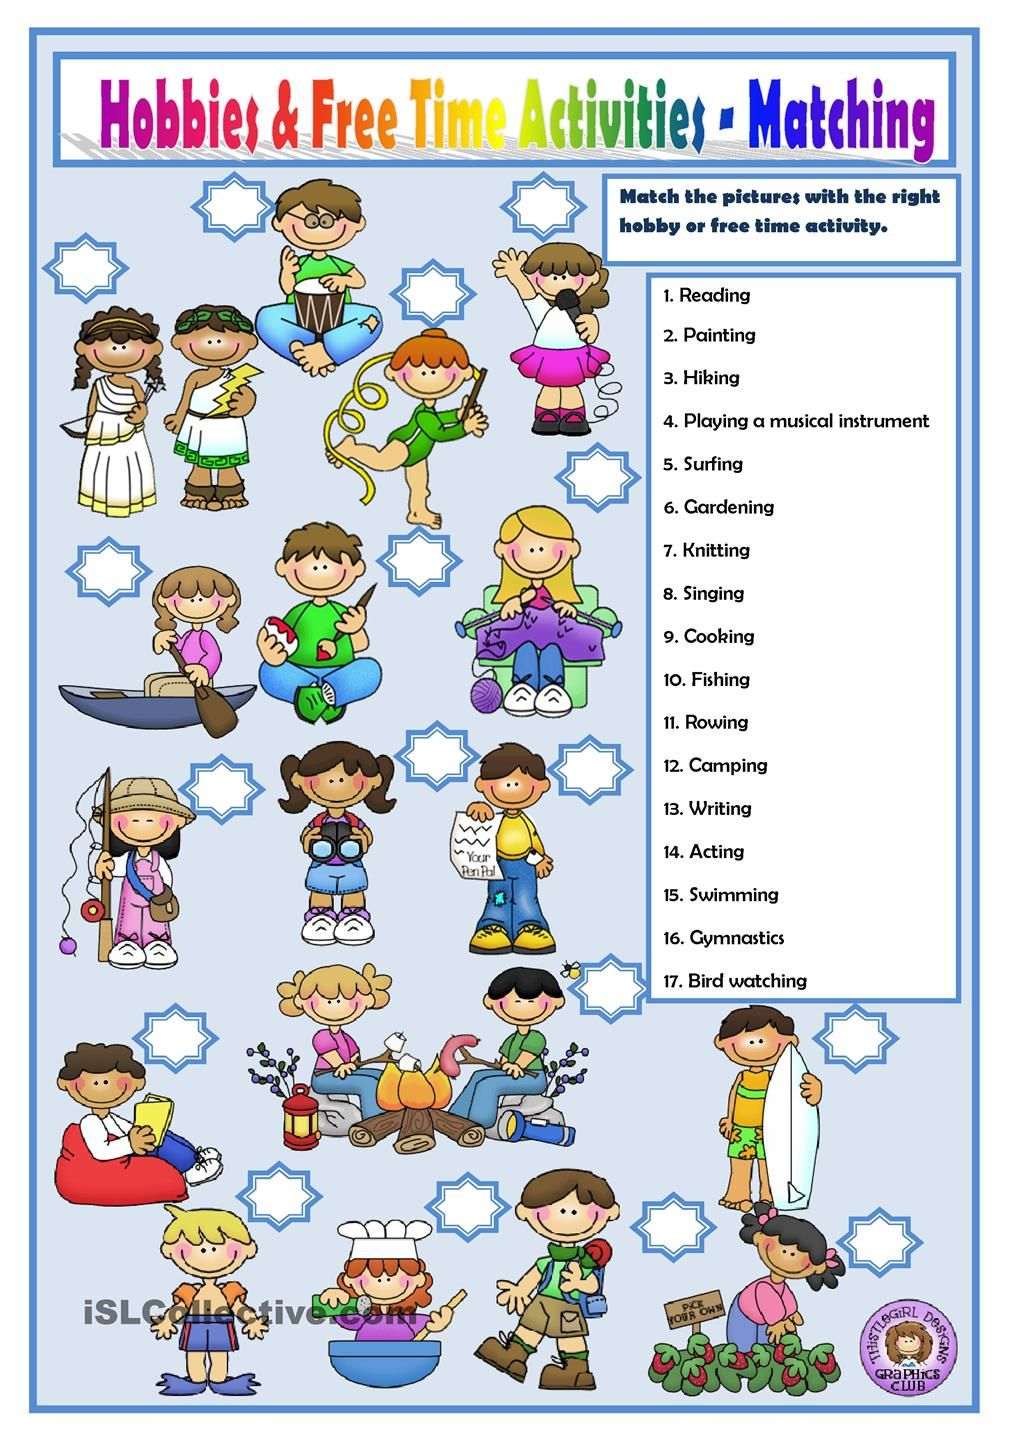 HOBBIES AND FREE TIME ACTIVITIES | Englisch | Pinterest | Englisch ...